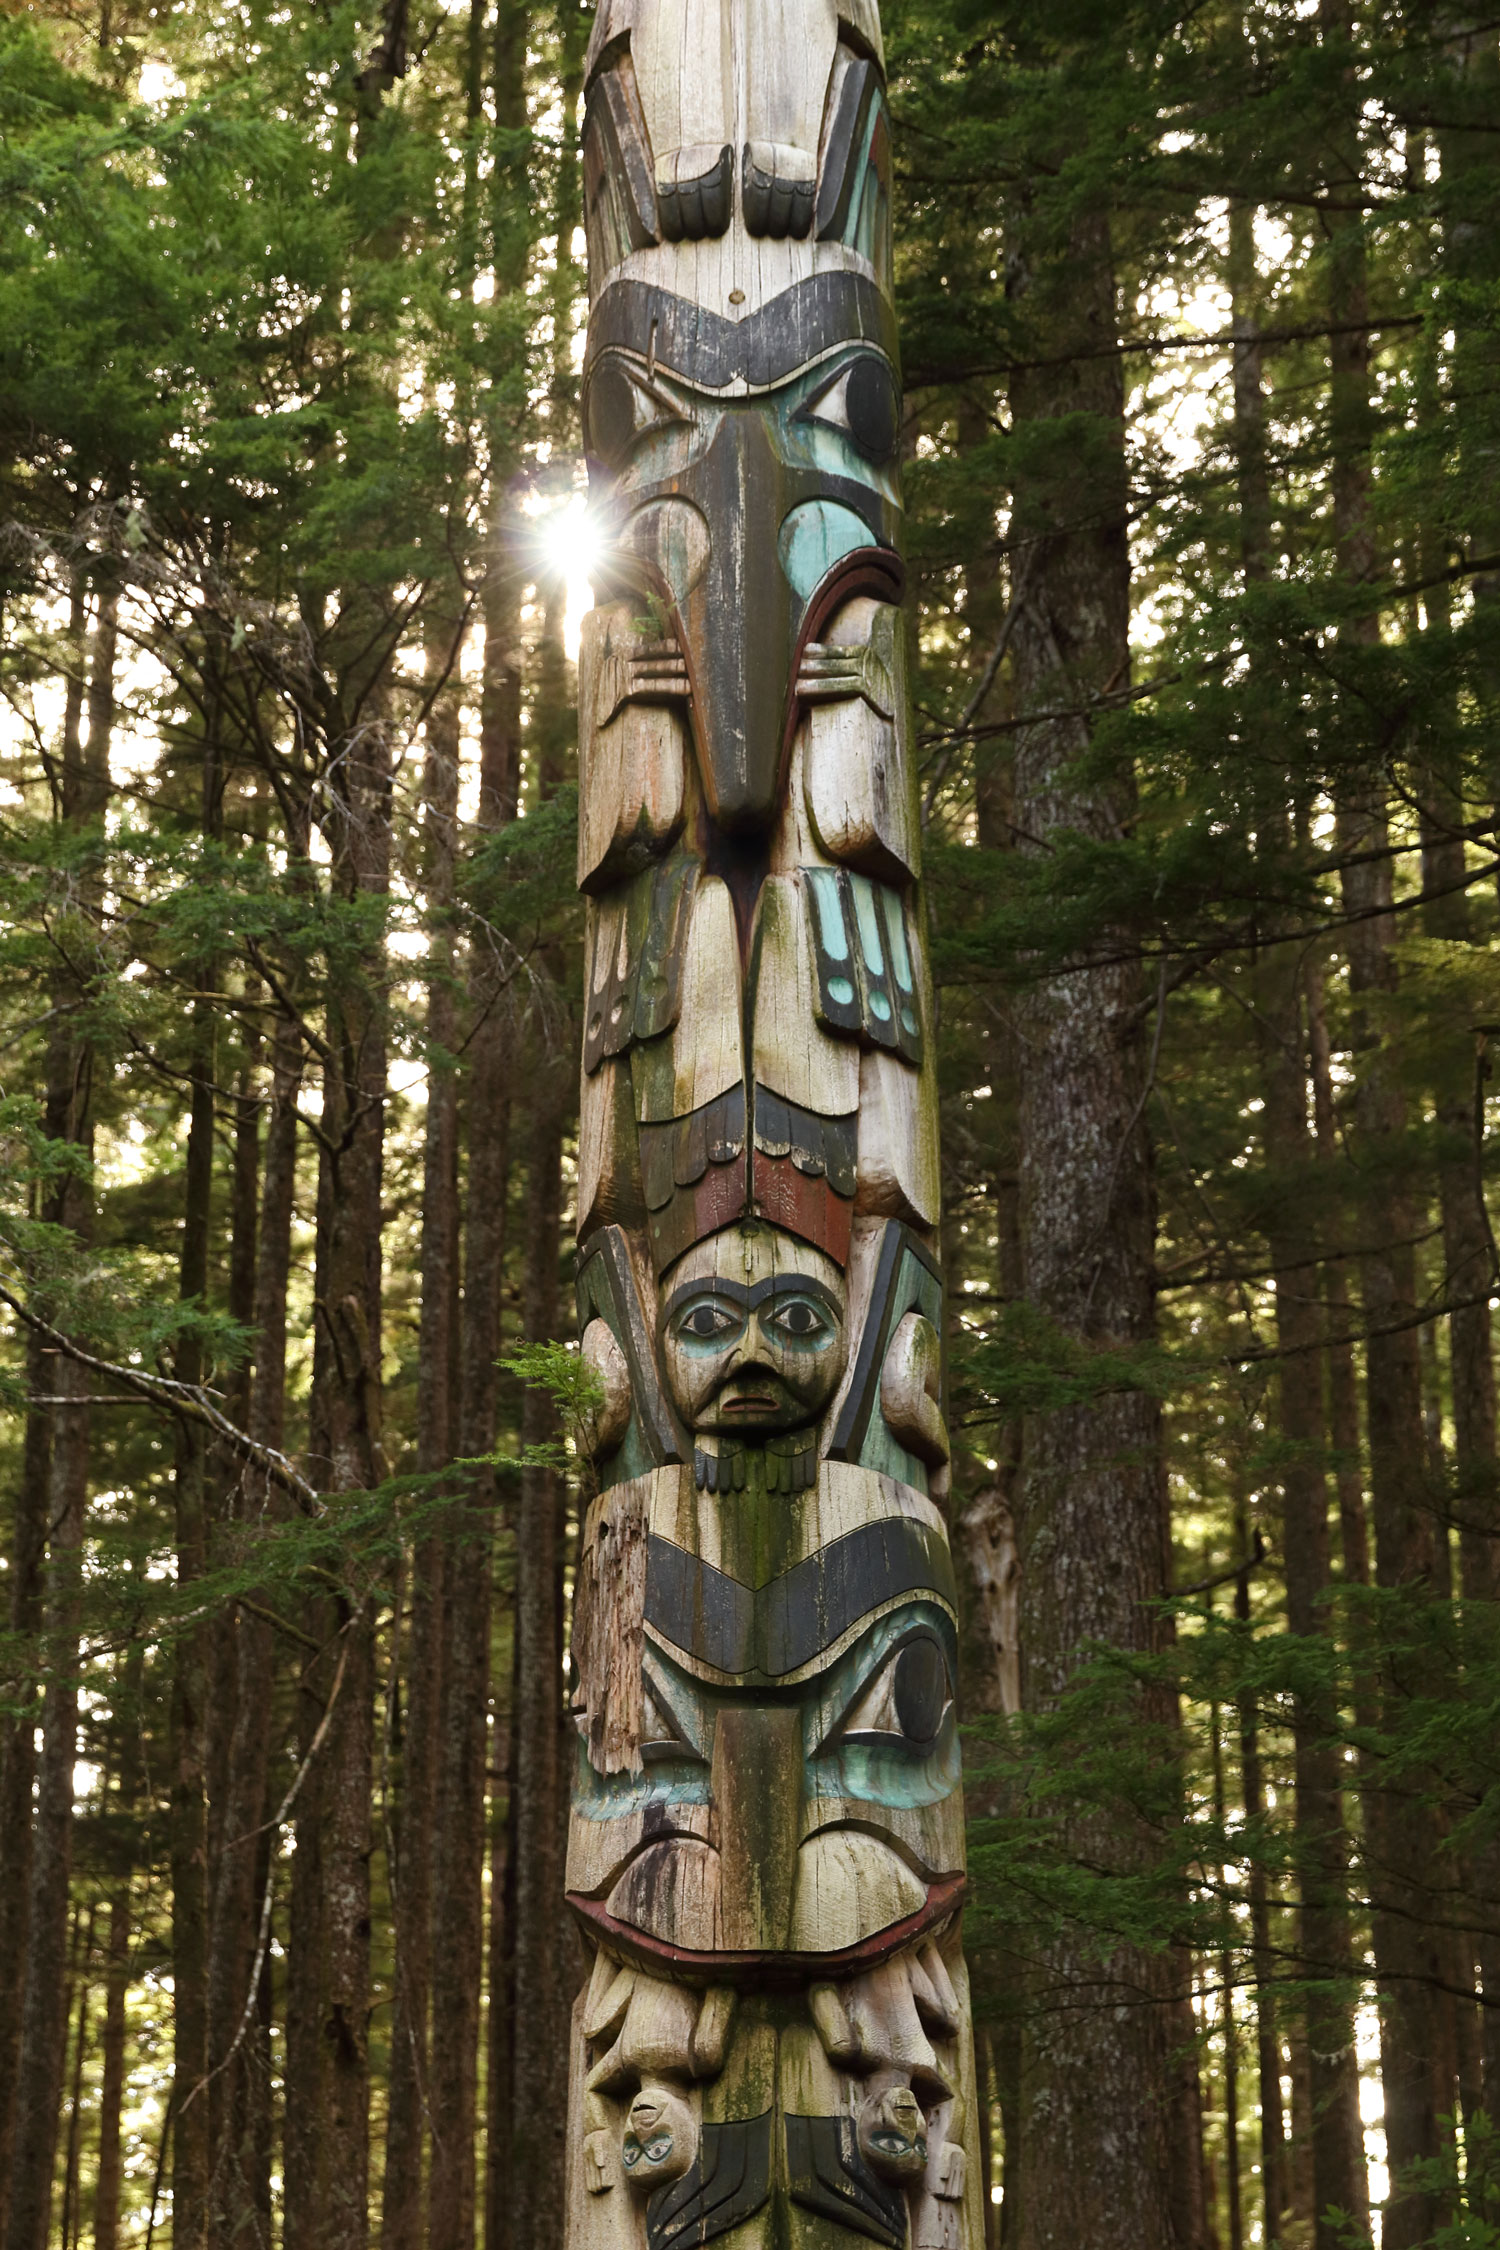 Experience Alaska Native Culture! - Visit totem parks and carving sheds in Hydaburg, Kasaan, and Klawock. You can also take classes at the Hydaburg Culture Camp. Check to see if there will be a totem raising! It's worth planning your trip around an event like that.